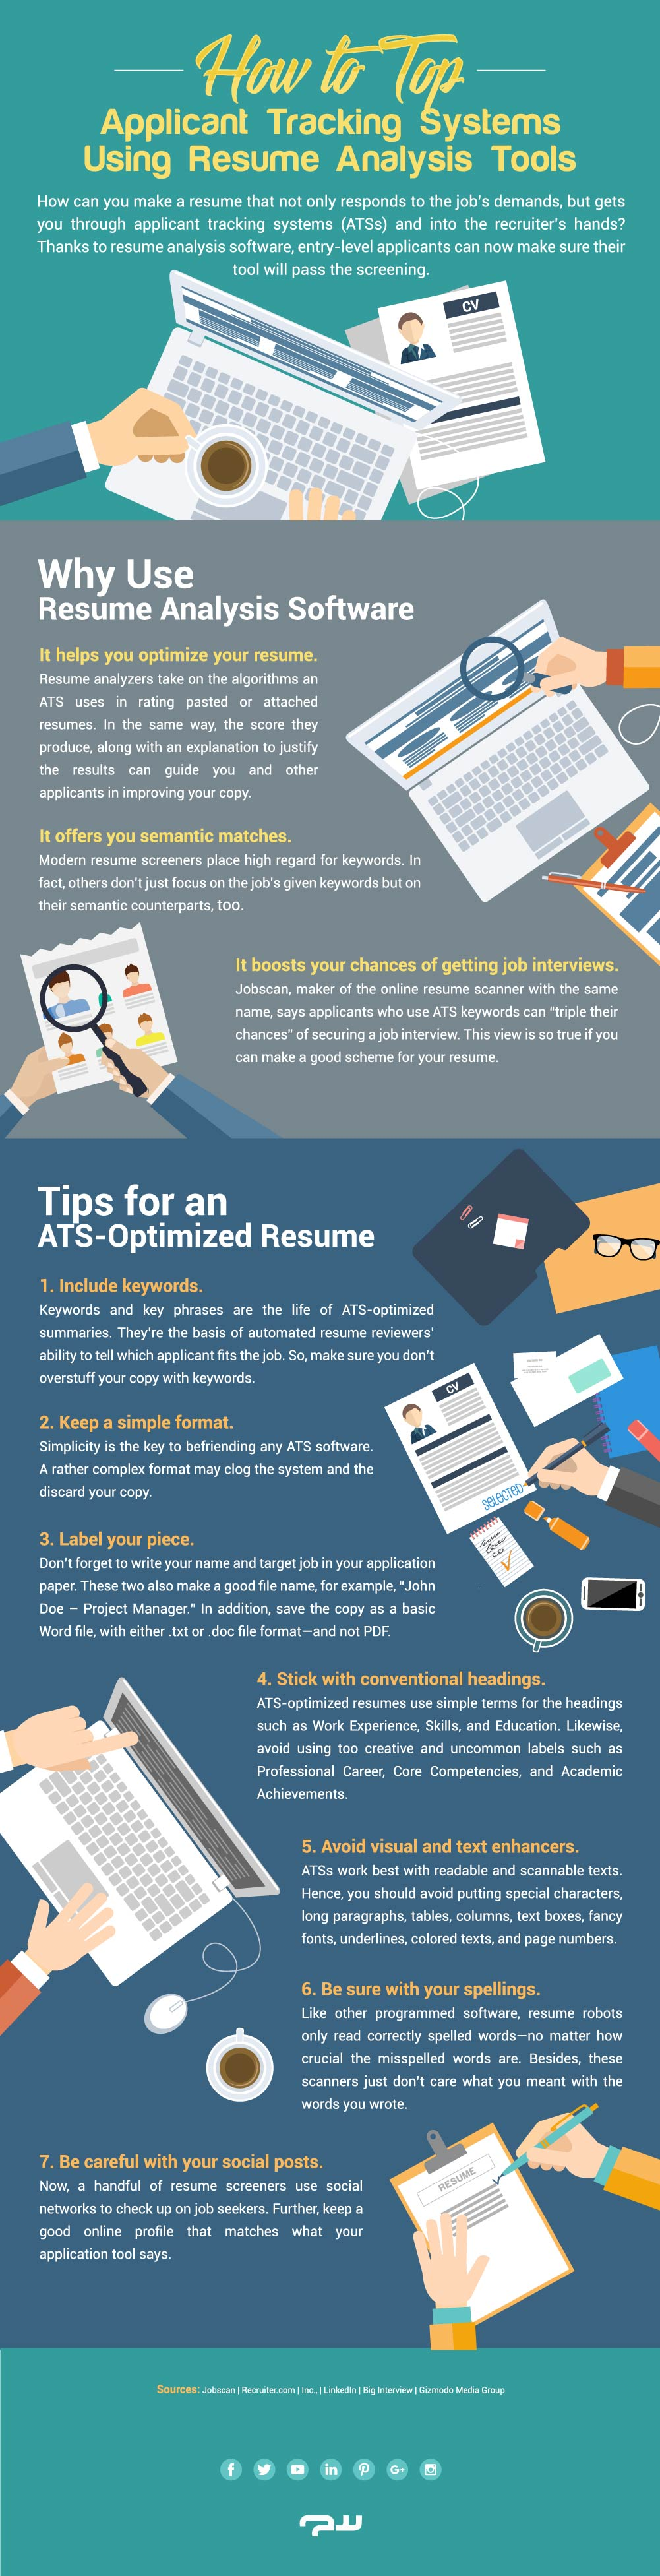 How to Top Applicant Tracking Systems Using Resume Analysis Tools_Infographic